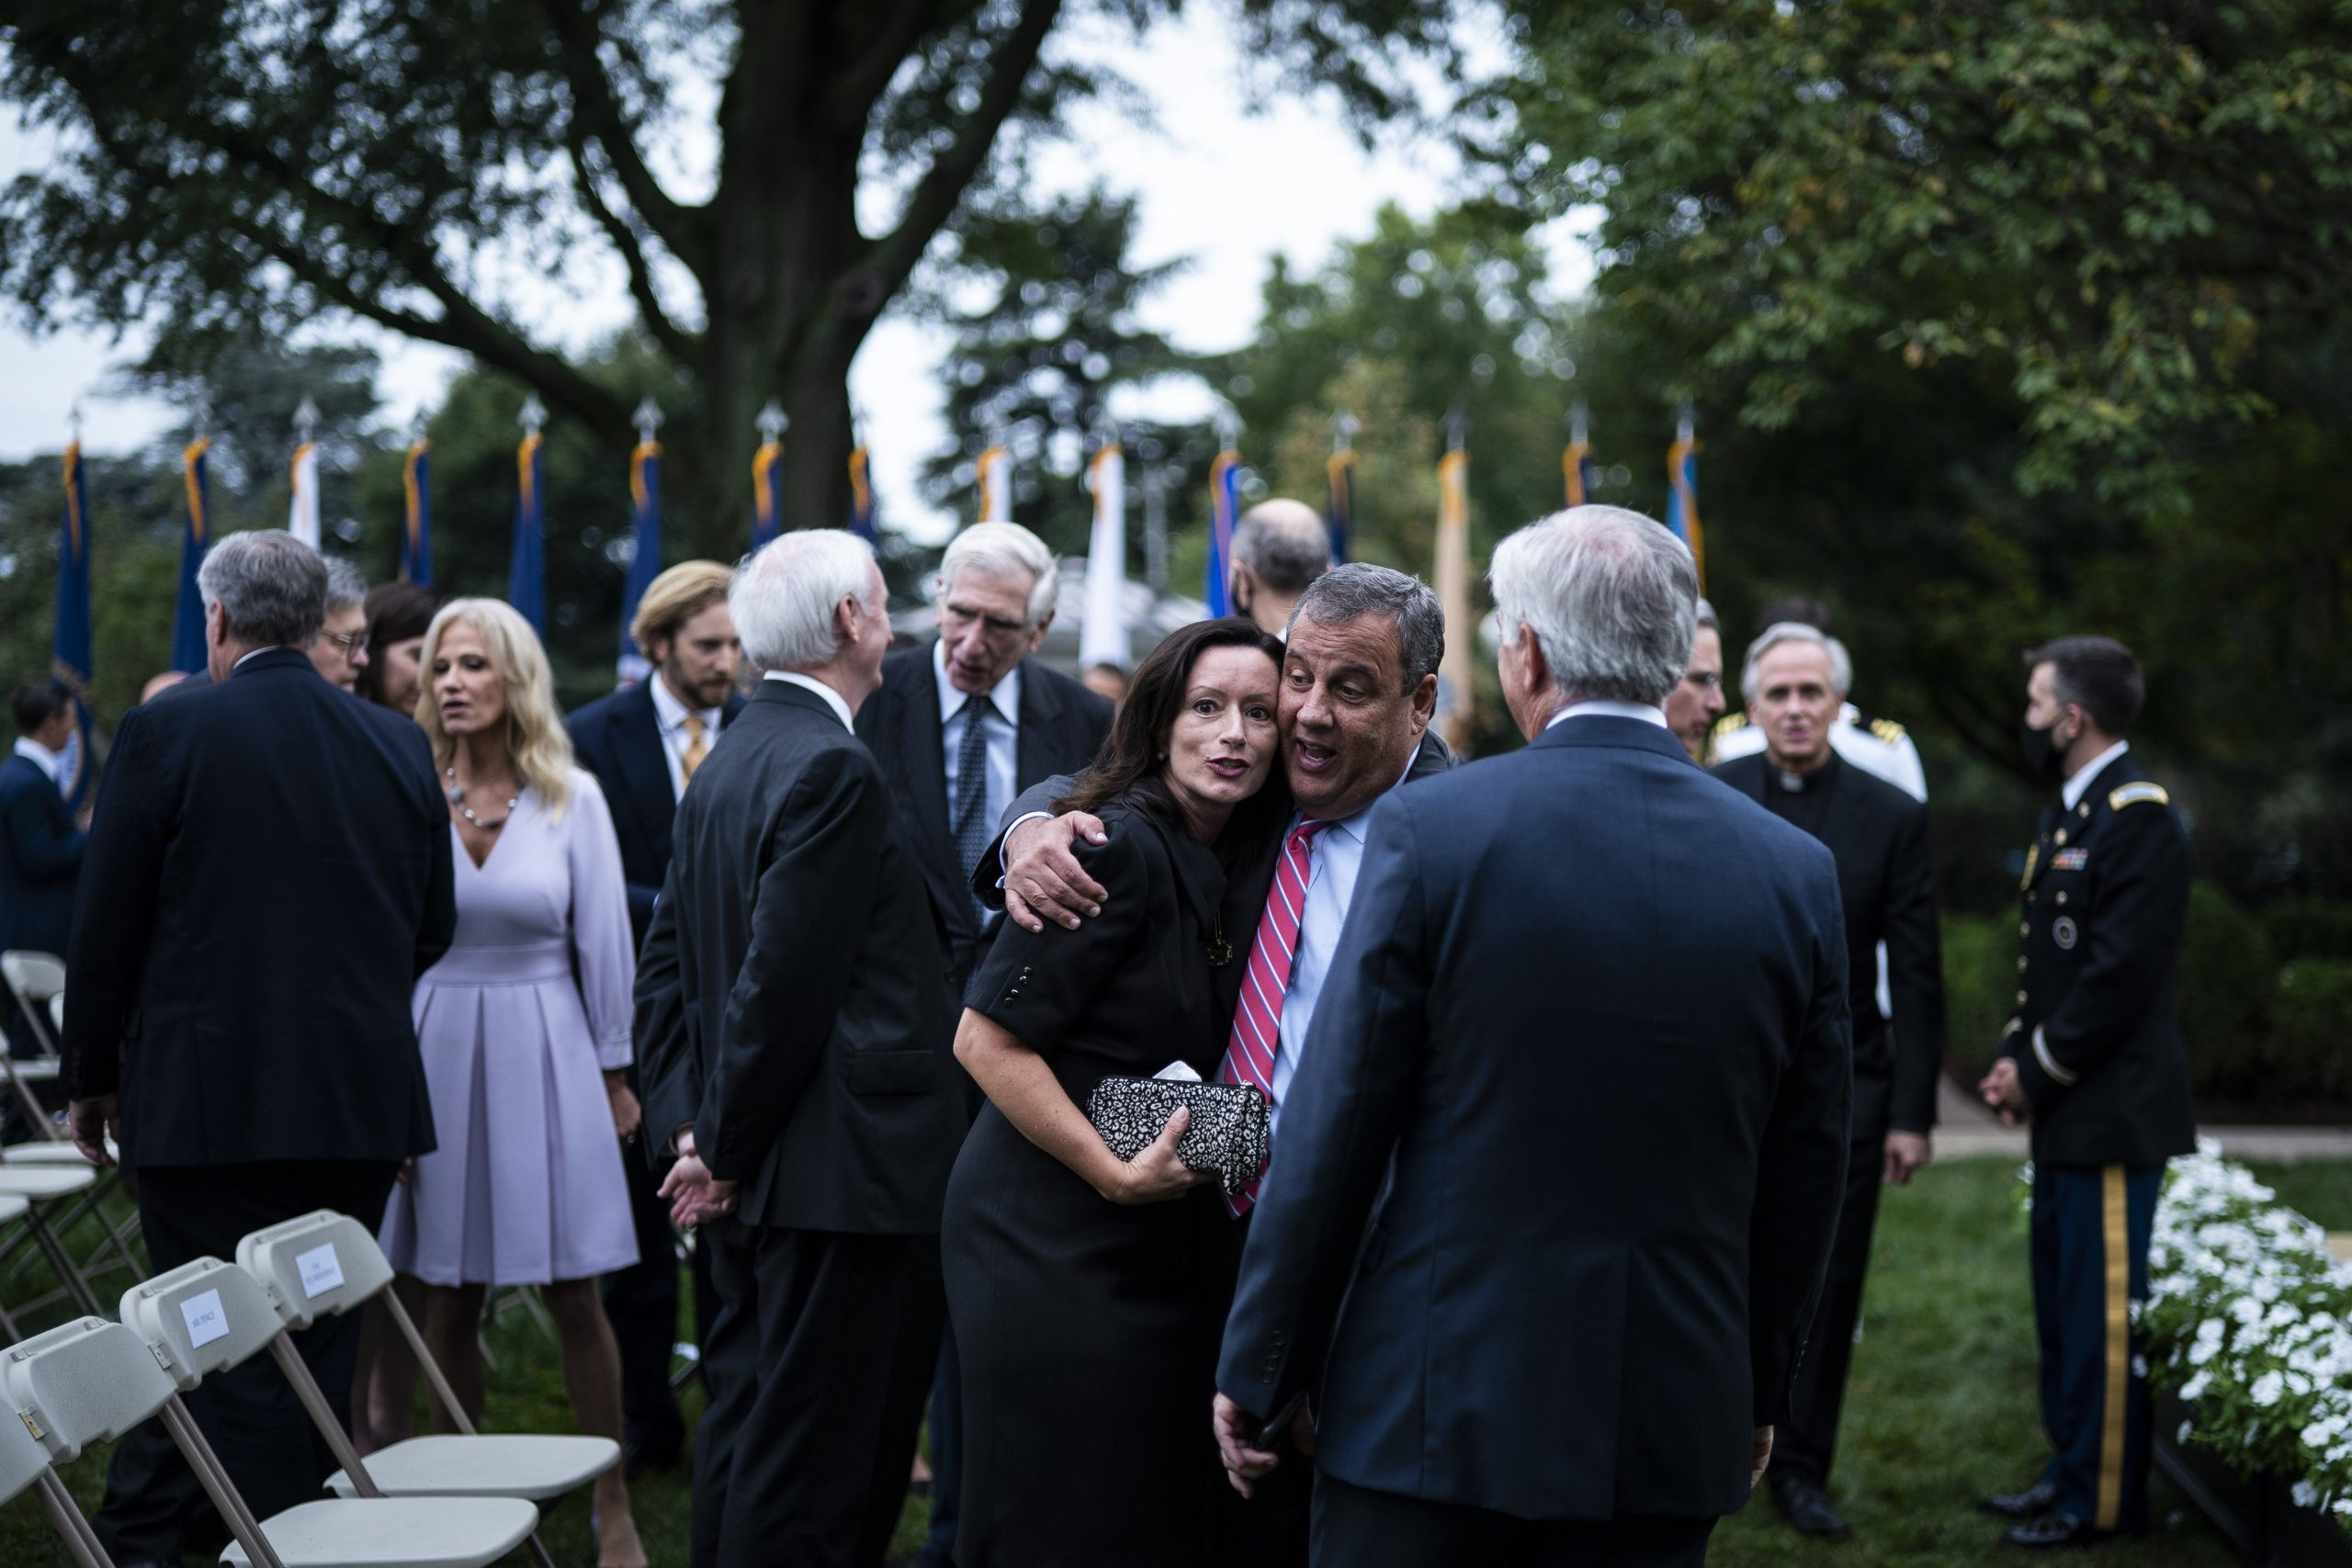 Being outdoors doesn't mean you're safe from COVID-19 – a White House event showed what not to do